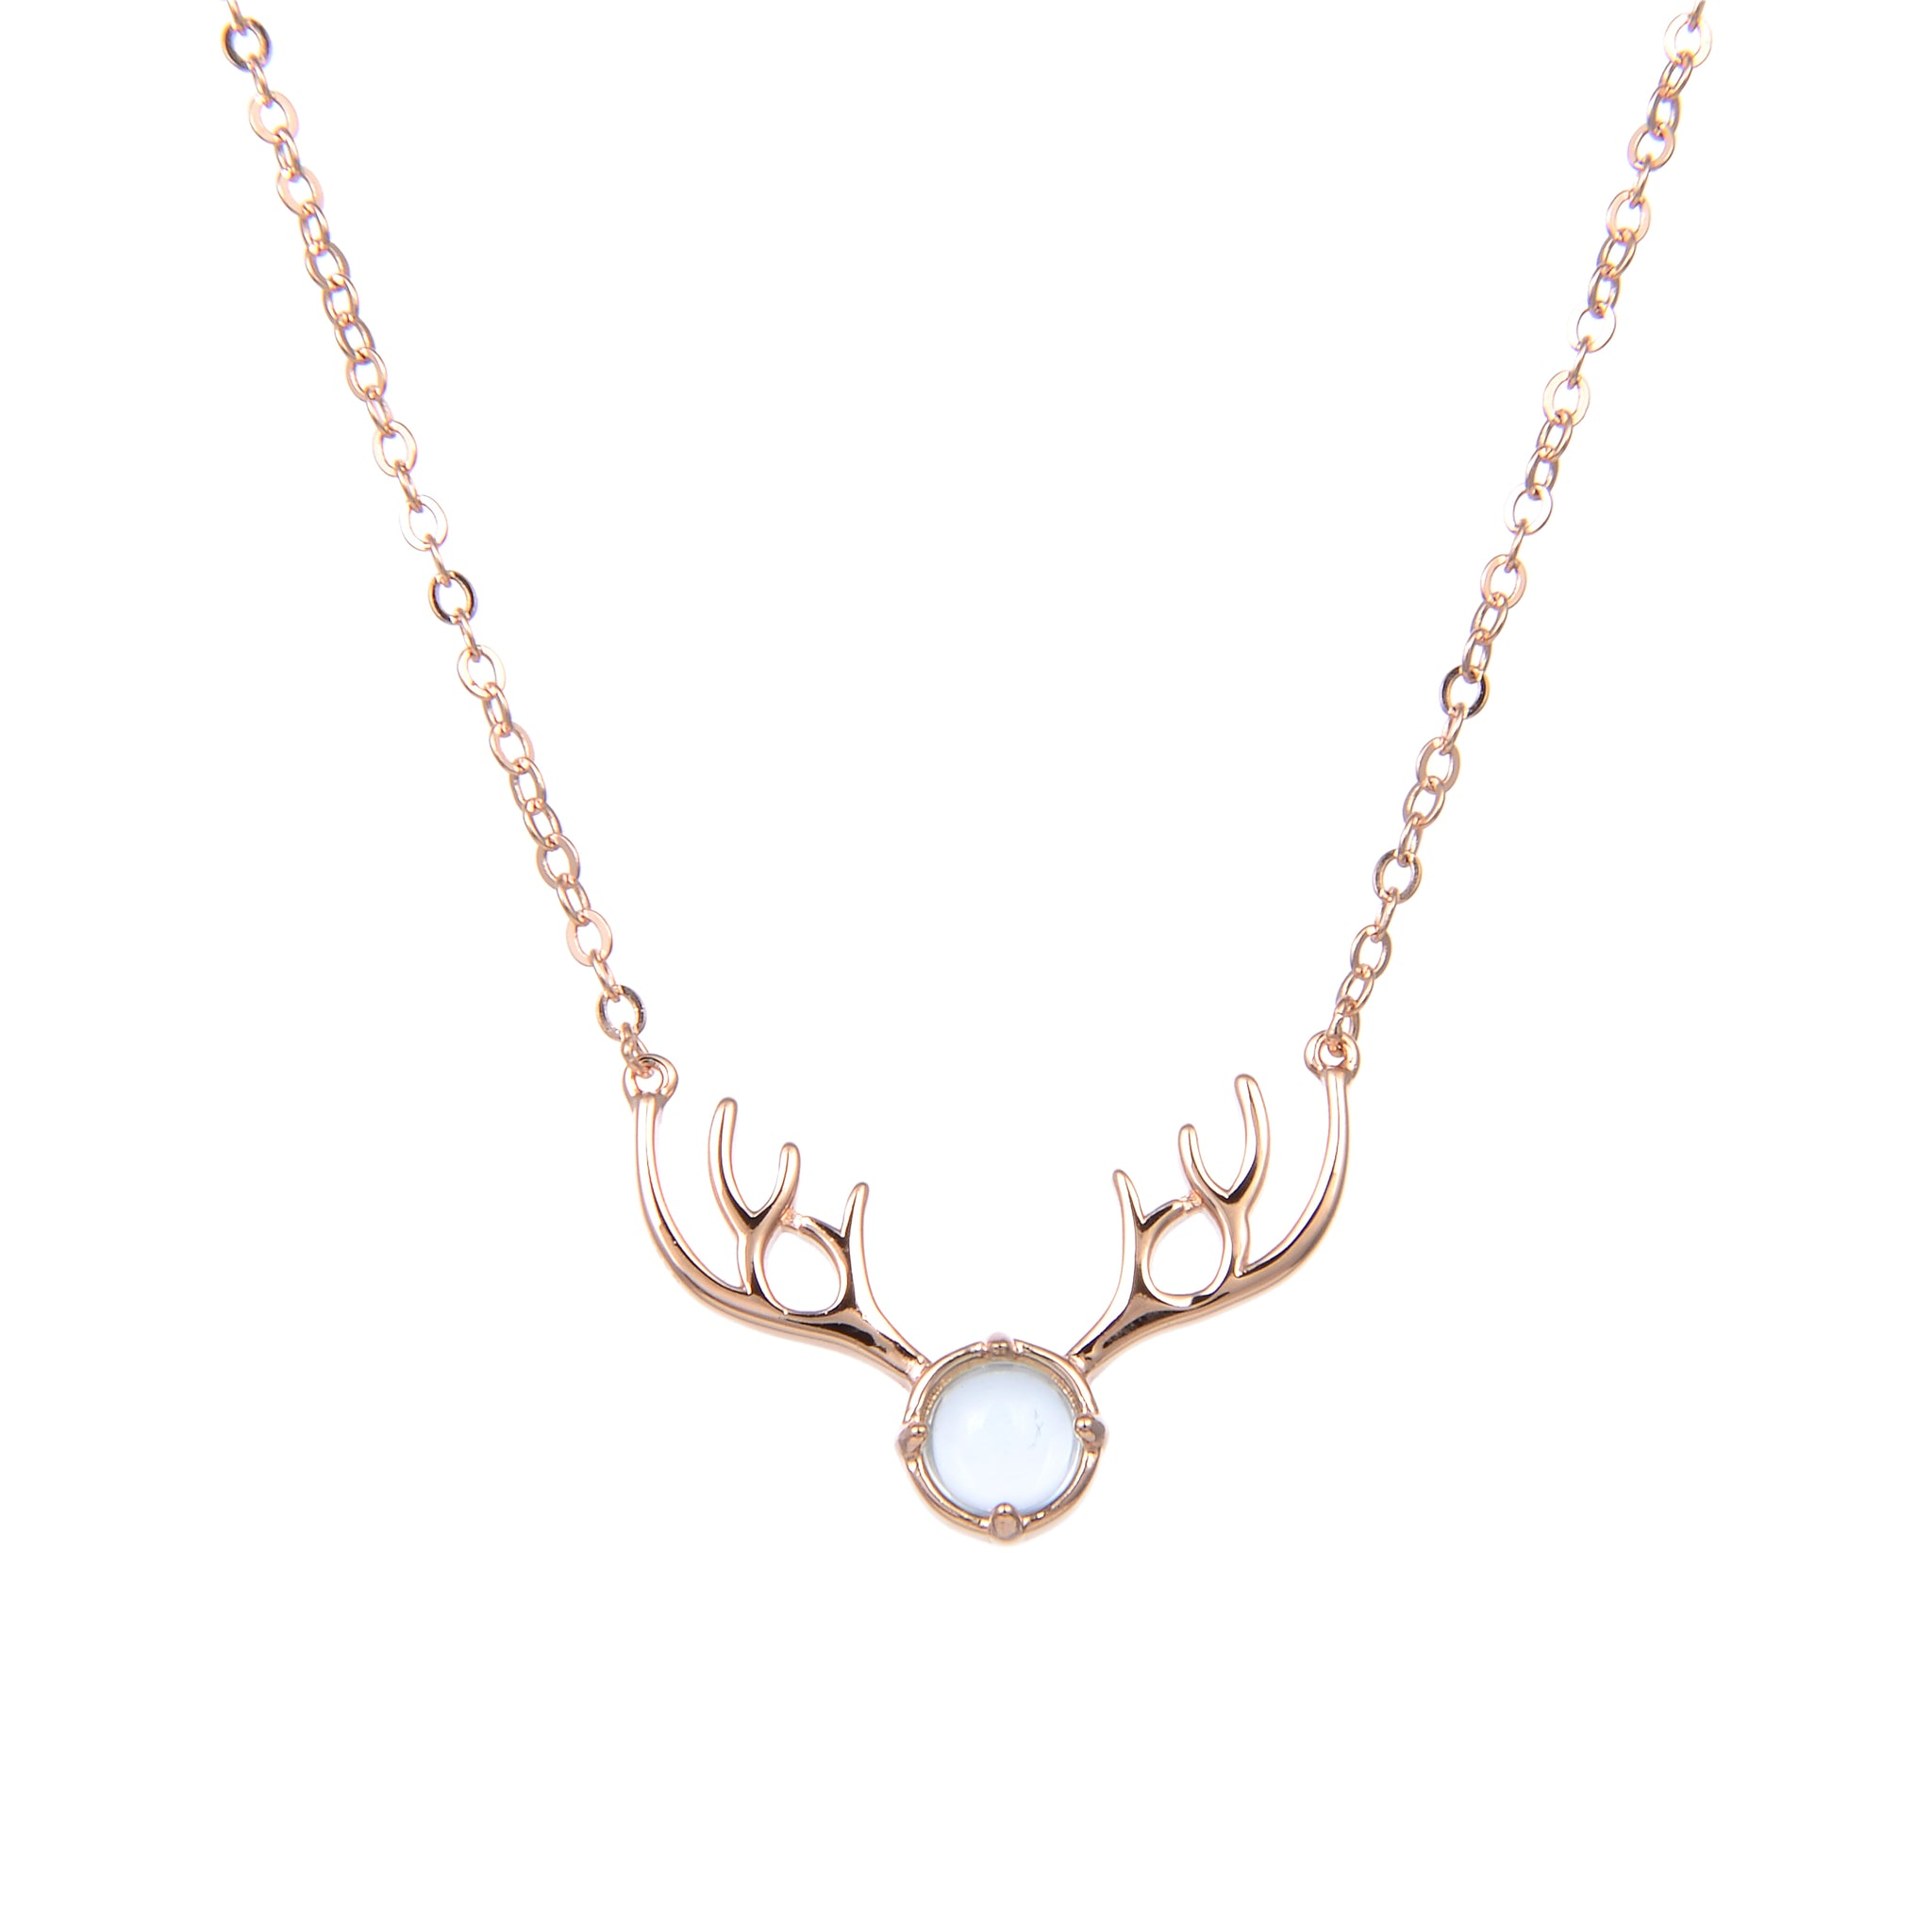 92.5 Sterling Silver CZ Cubic Zirconia Rose Gold Plated Horn Shape Pendant with Sterling Silver Necklace Chain